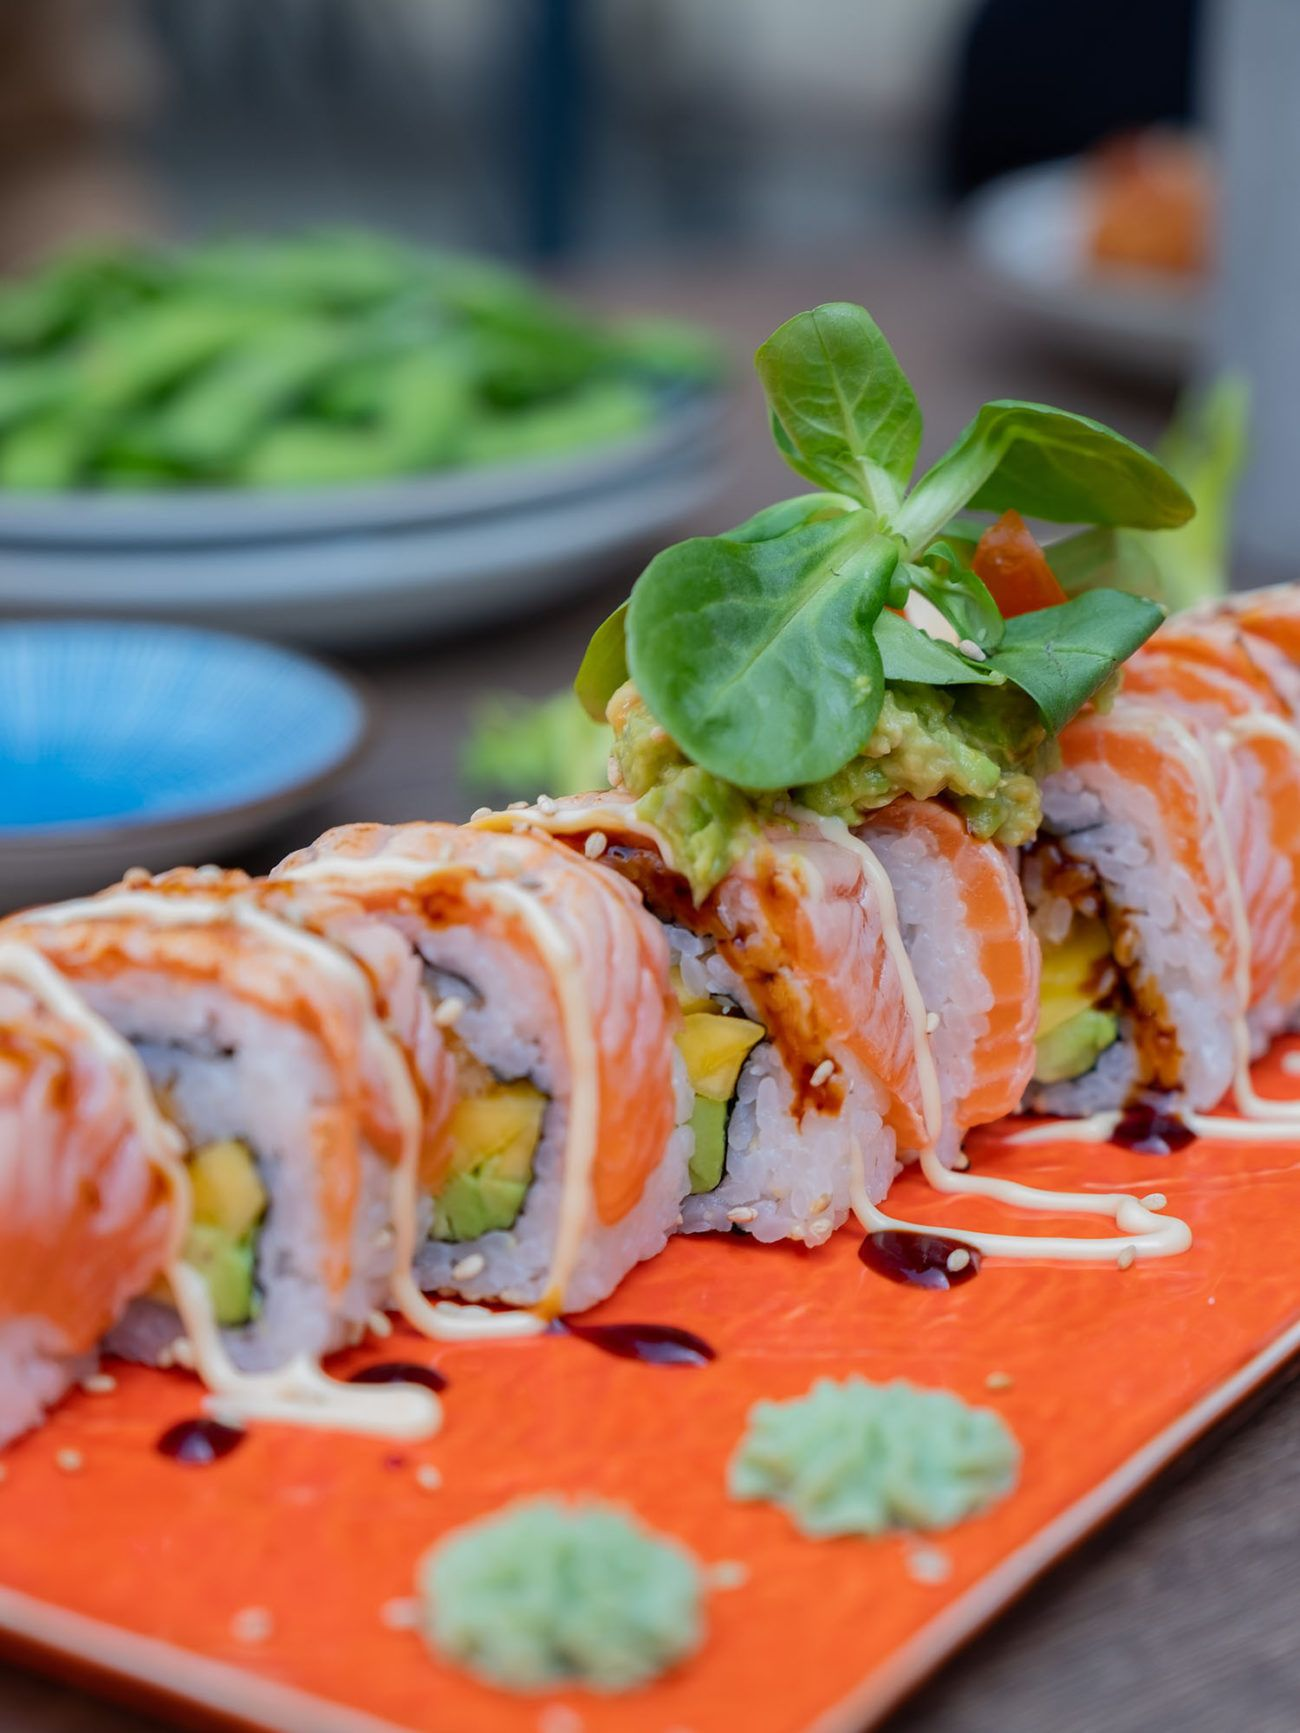 Foodblog About Fuel, Restaurant CHOTTO Berlin, Sushi, California Roll